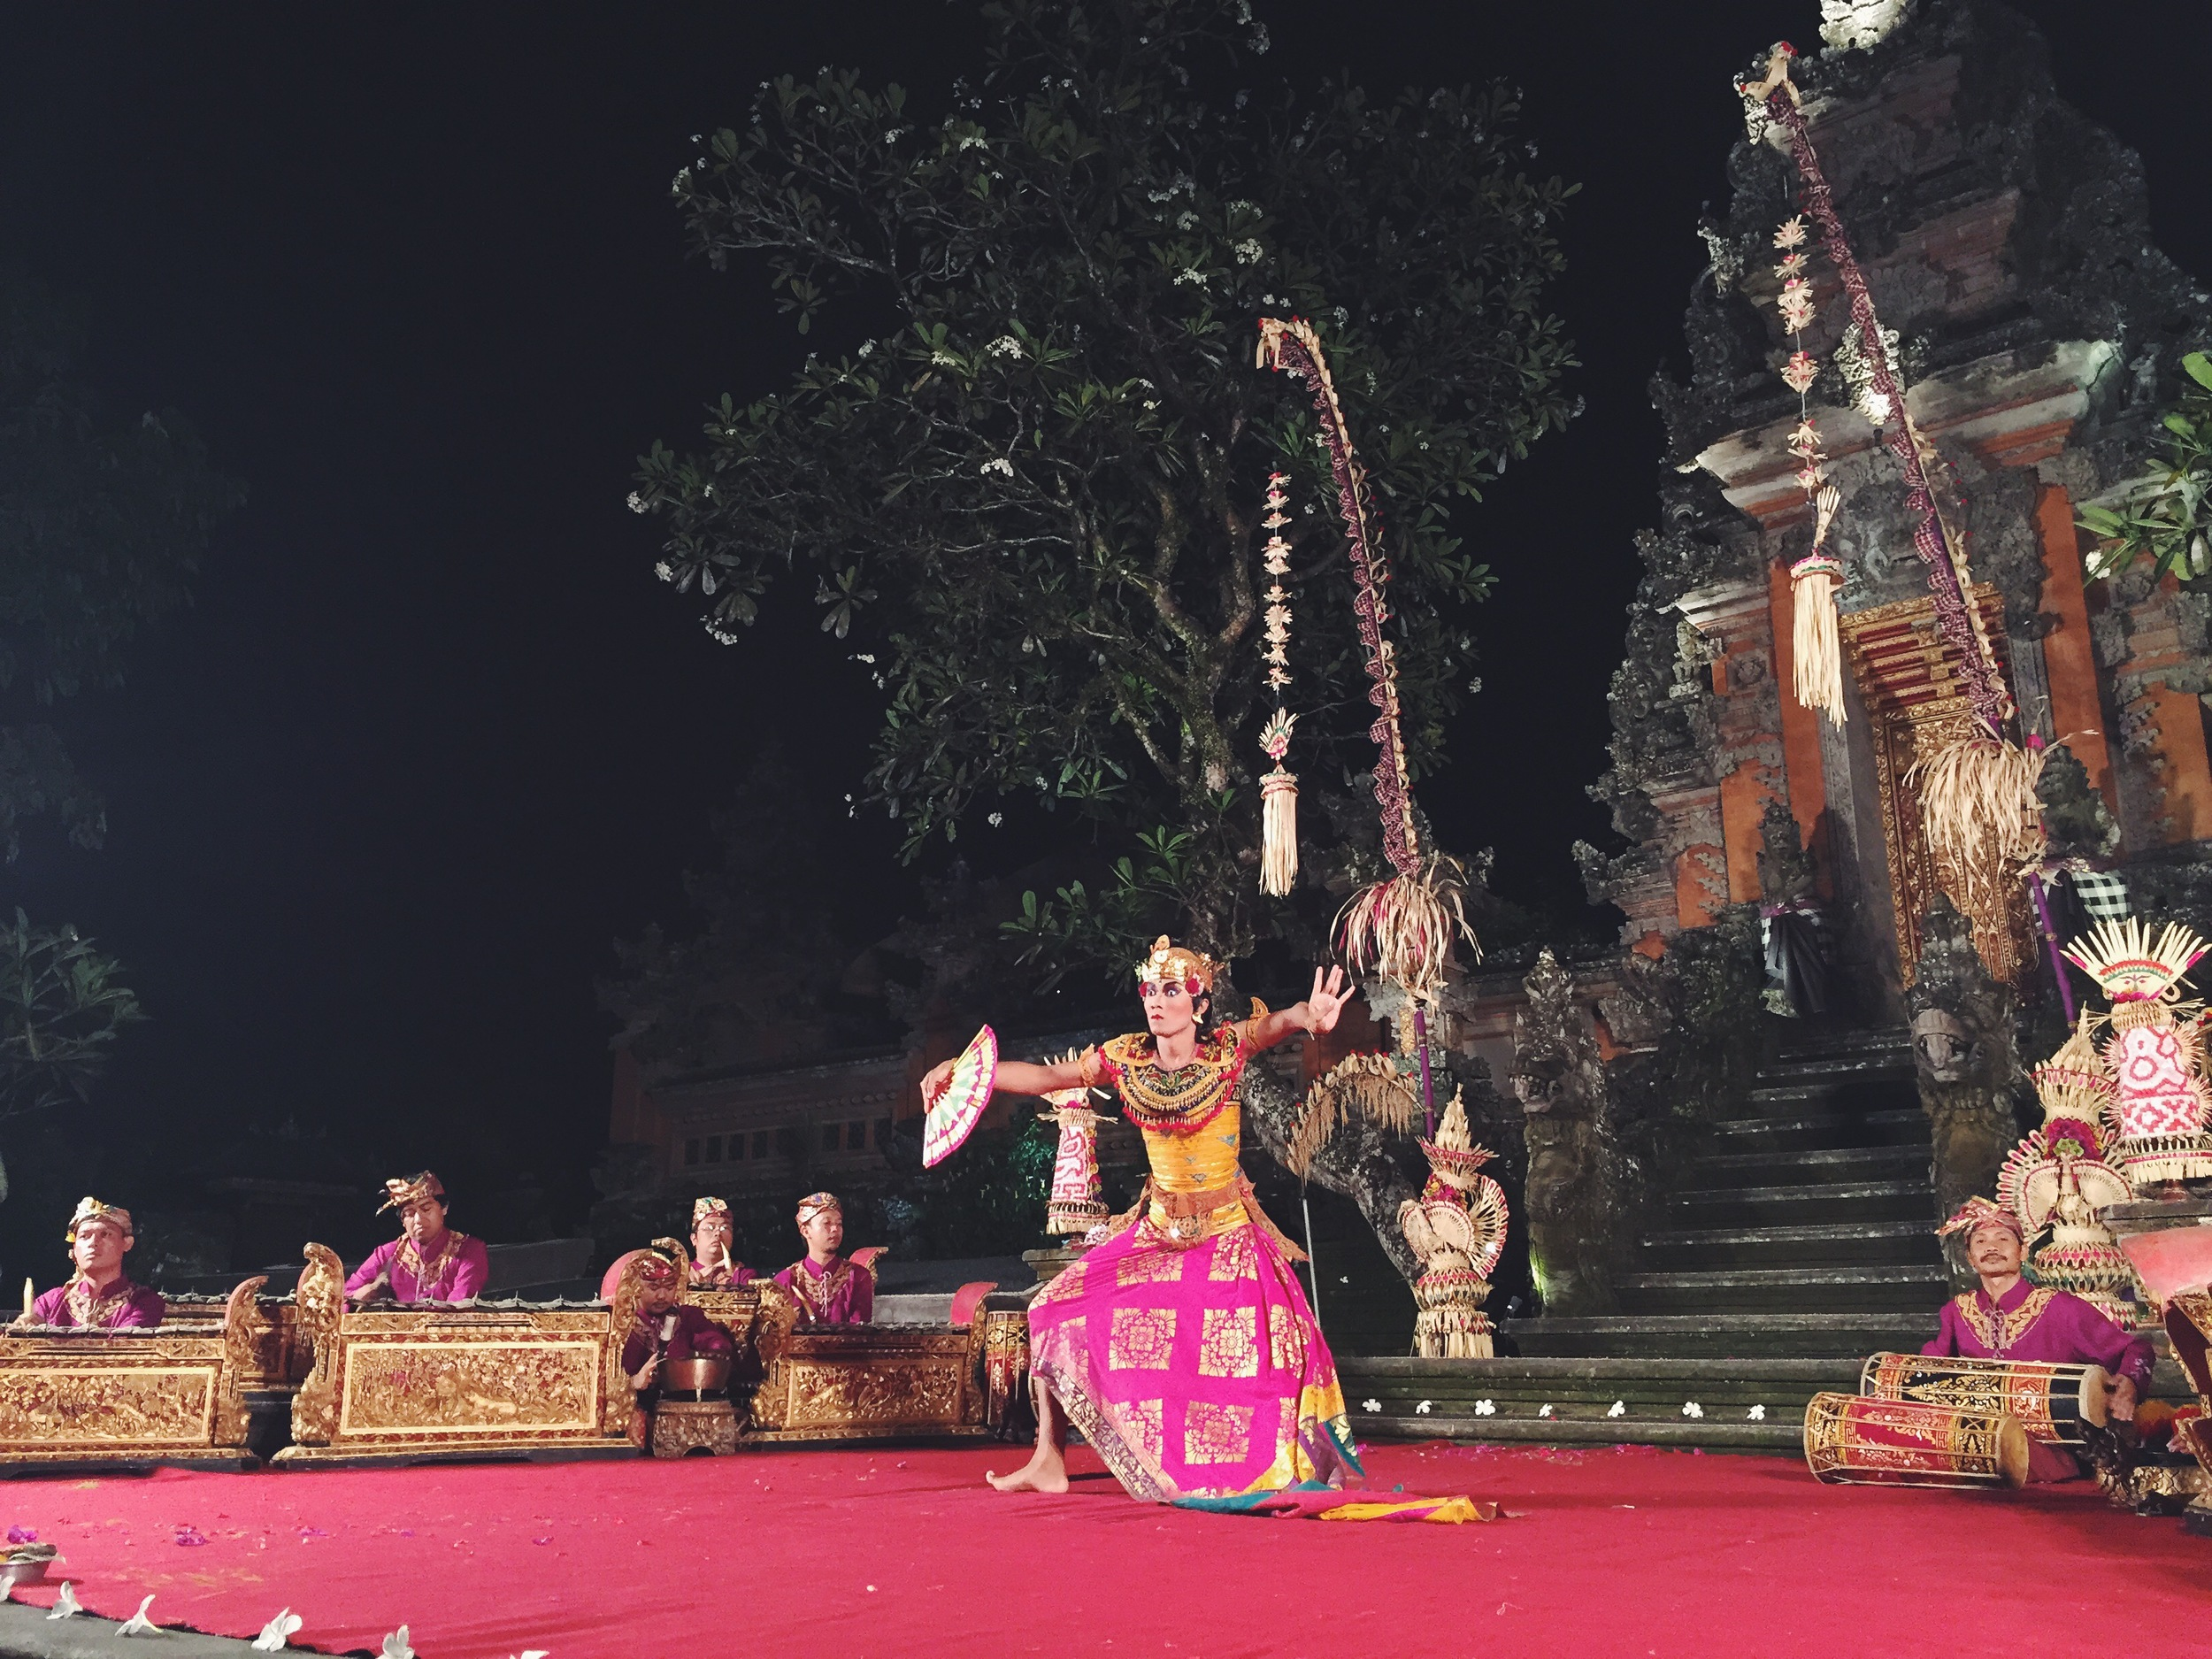 One of the many traditional Balinese dance performances offered in Ubud. All are recommended.